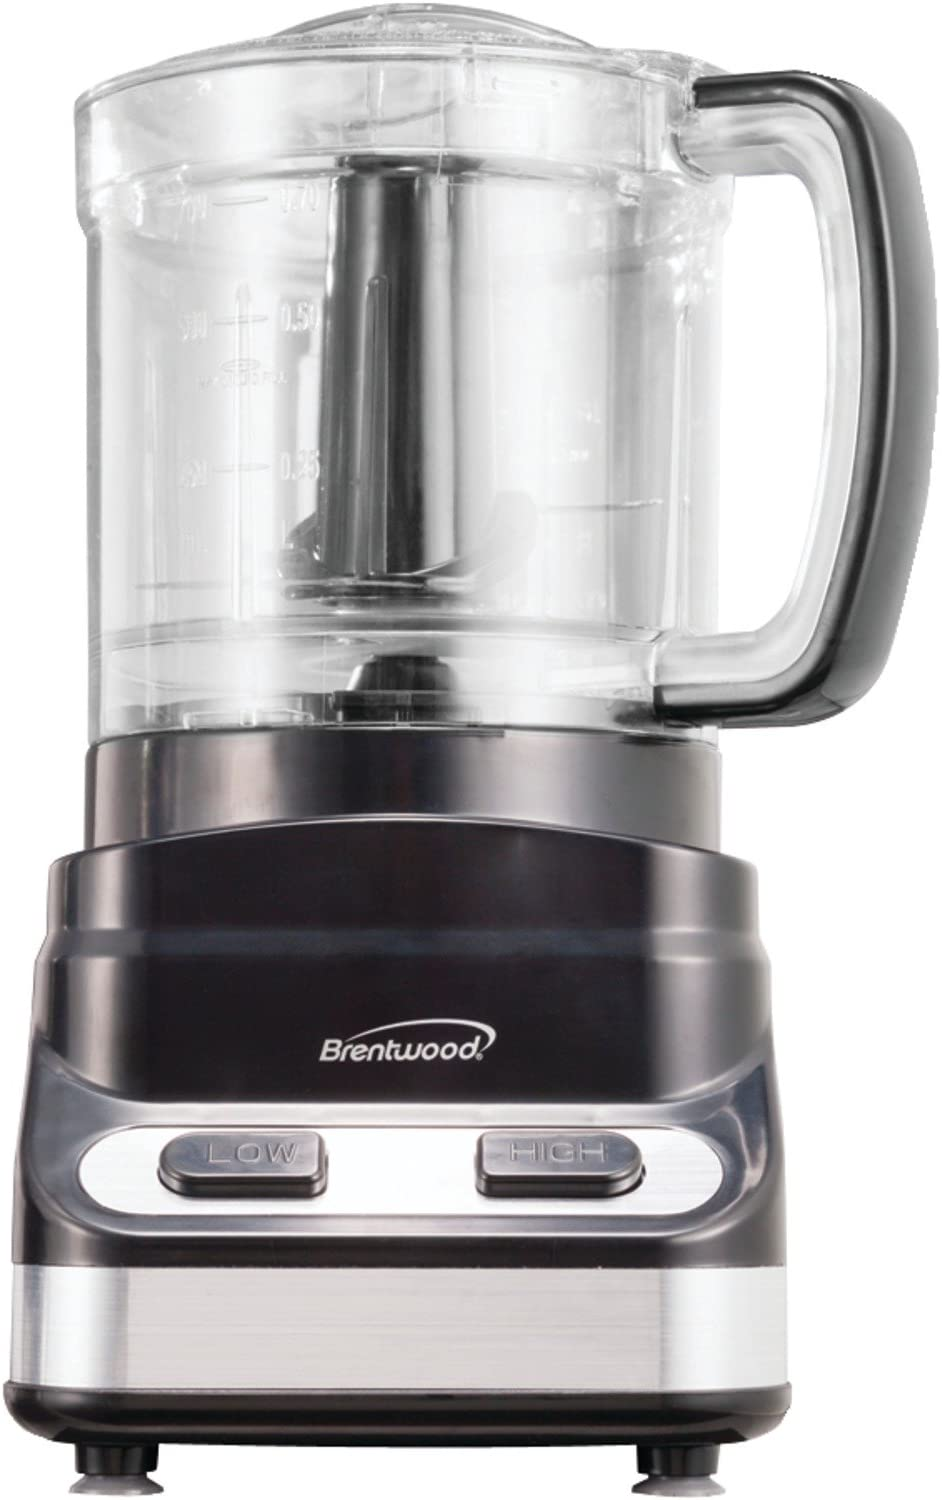 Brentwood Mini Food Processor